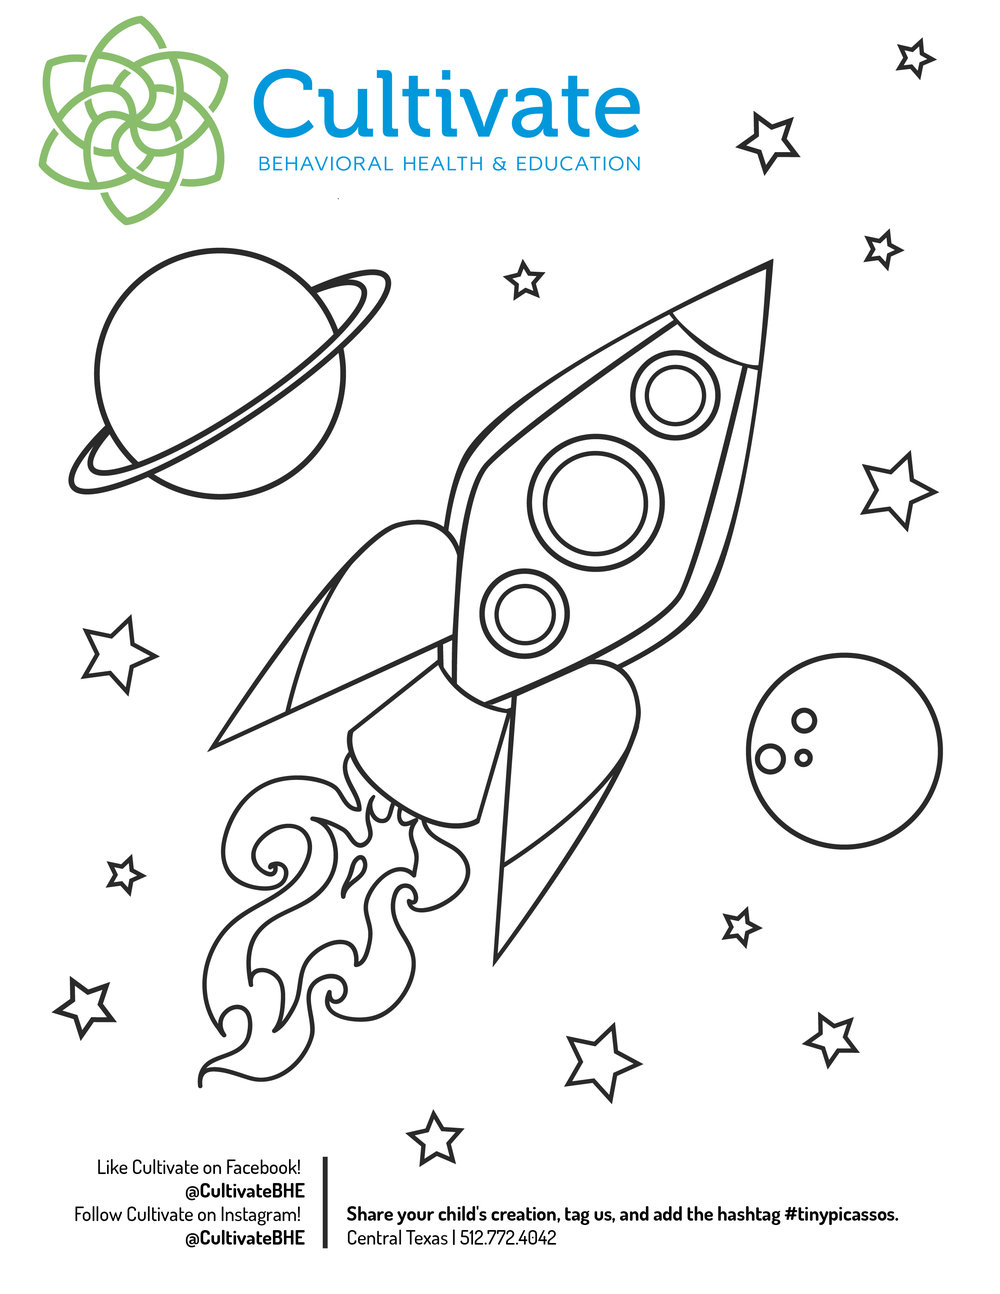 autism-rocket-cartoon-coloring-pages-aba-therapy-austin-san-antonio-houston-texas.jpg